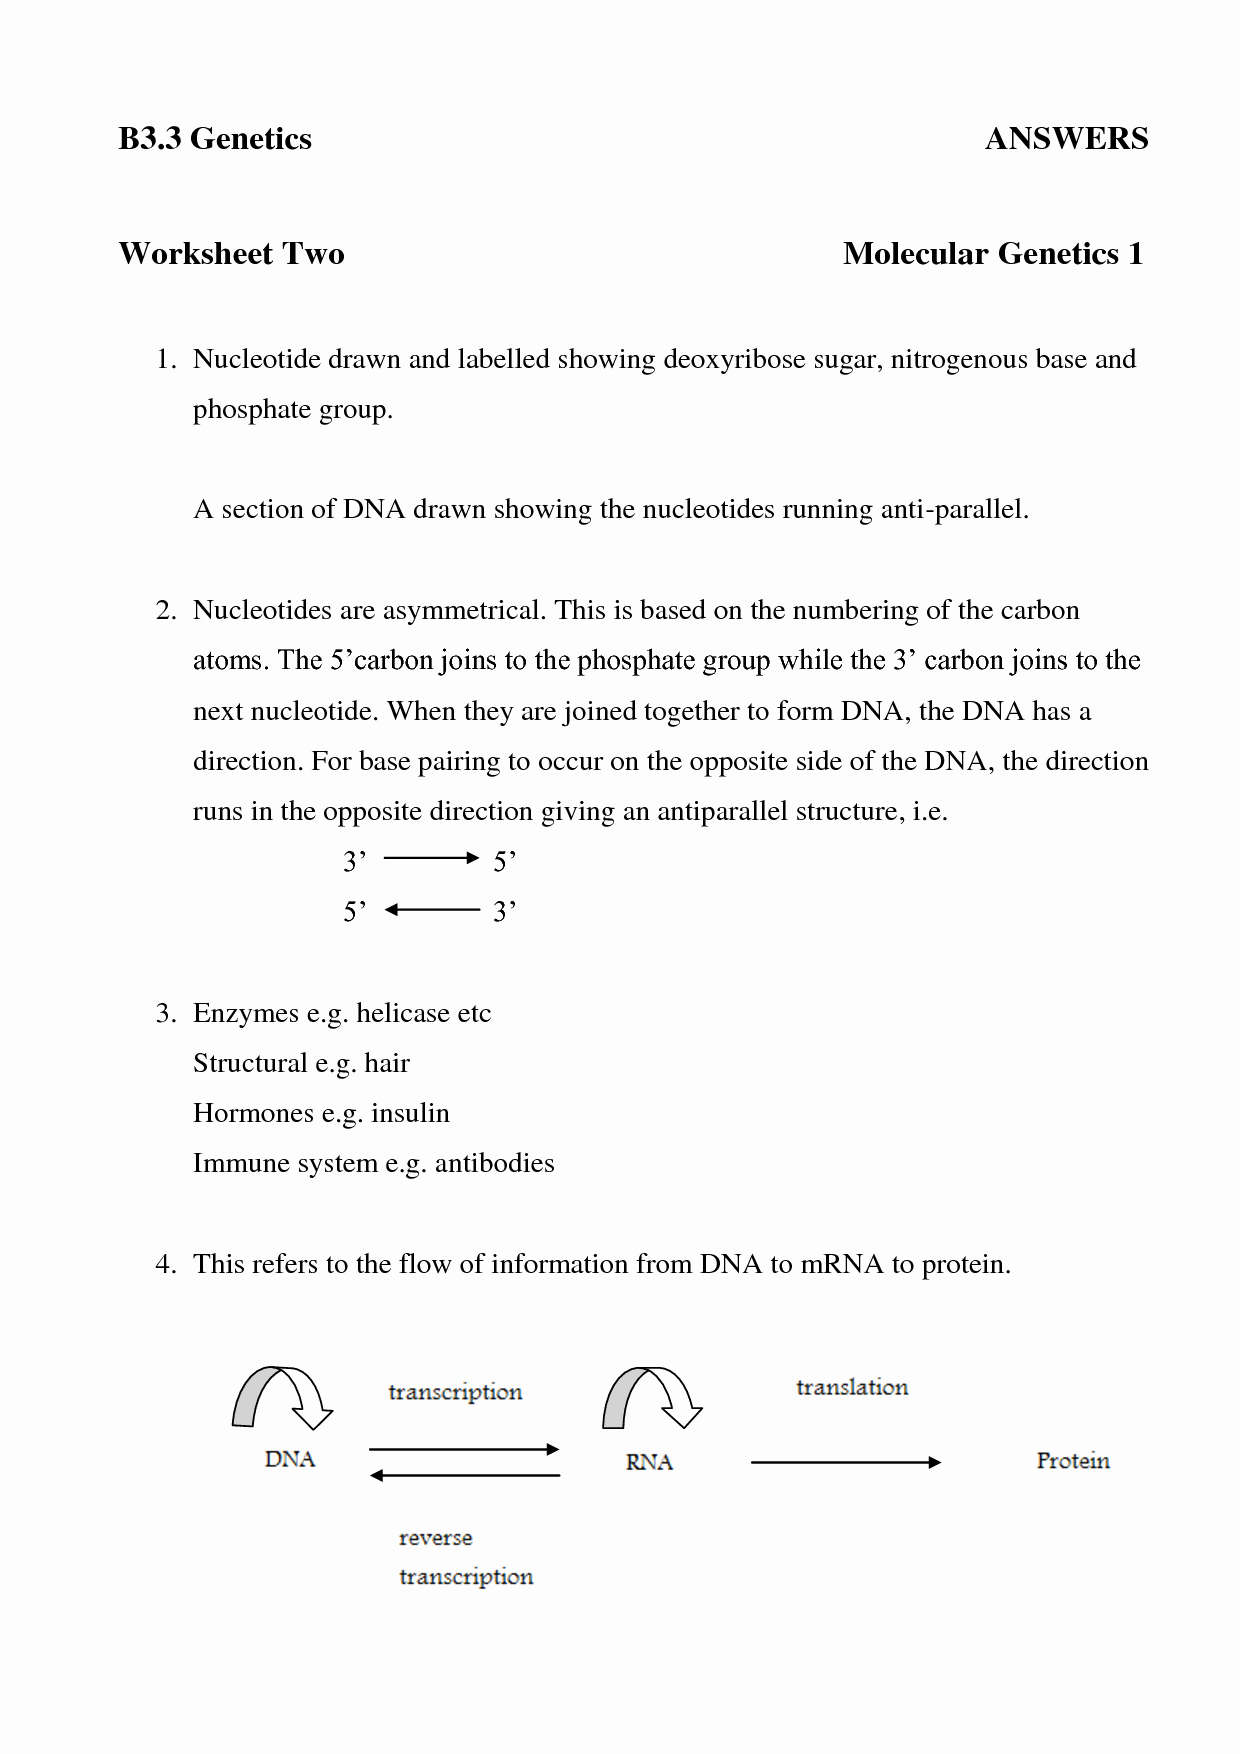 Dna and Rna Worksheet Answers Elegant 16 Best Of Dna and Rna Protein Synthesis Worksheet